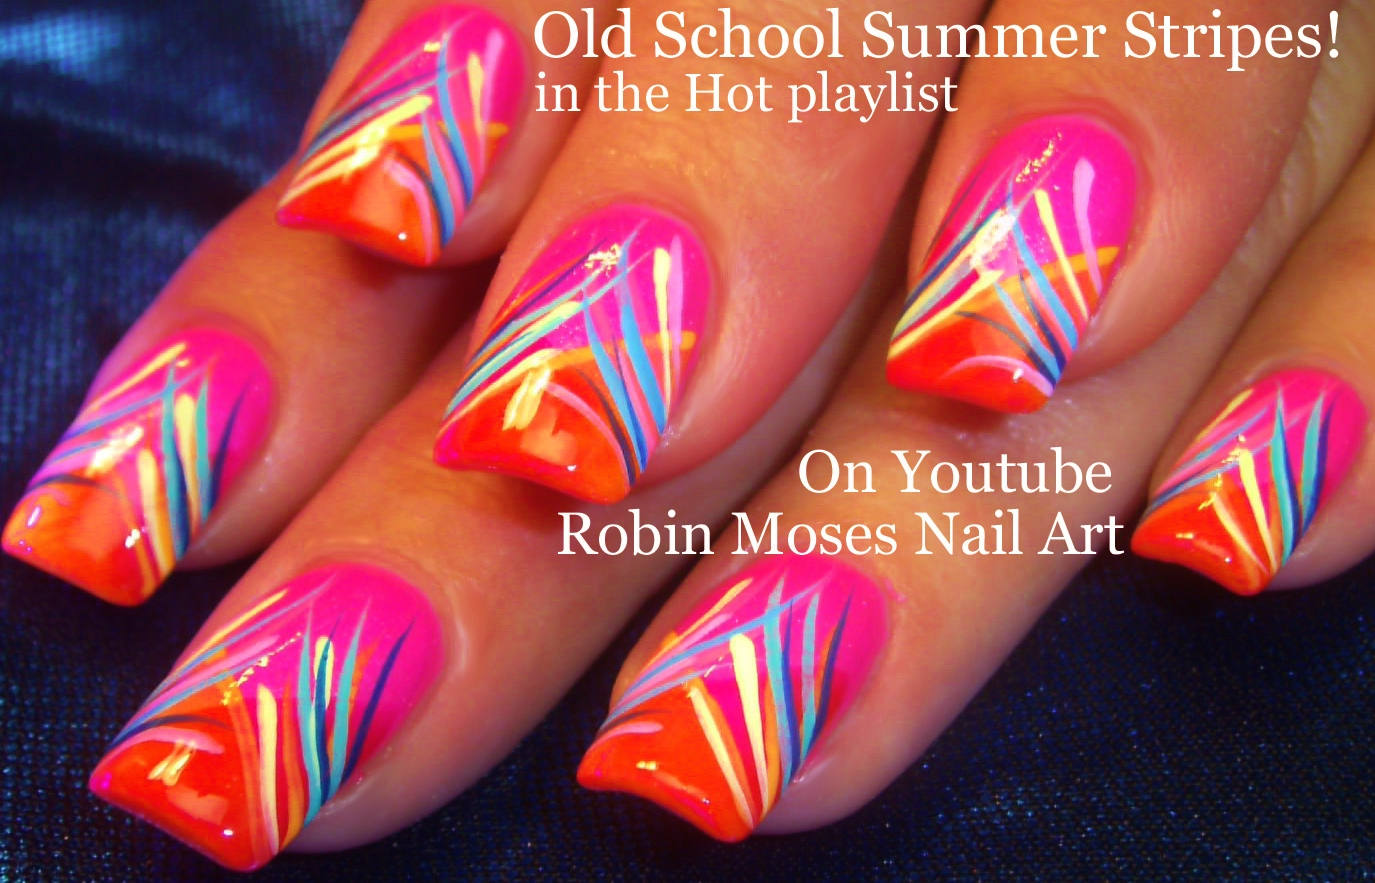 Nail Art By Robin Moses Neon Striped Nail Art Design Tutorial Up